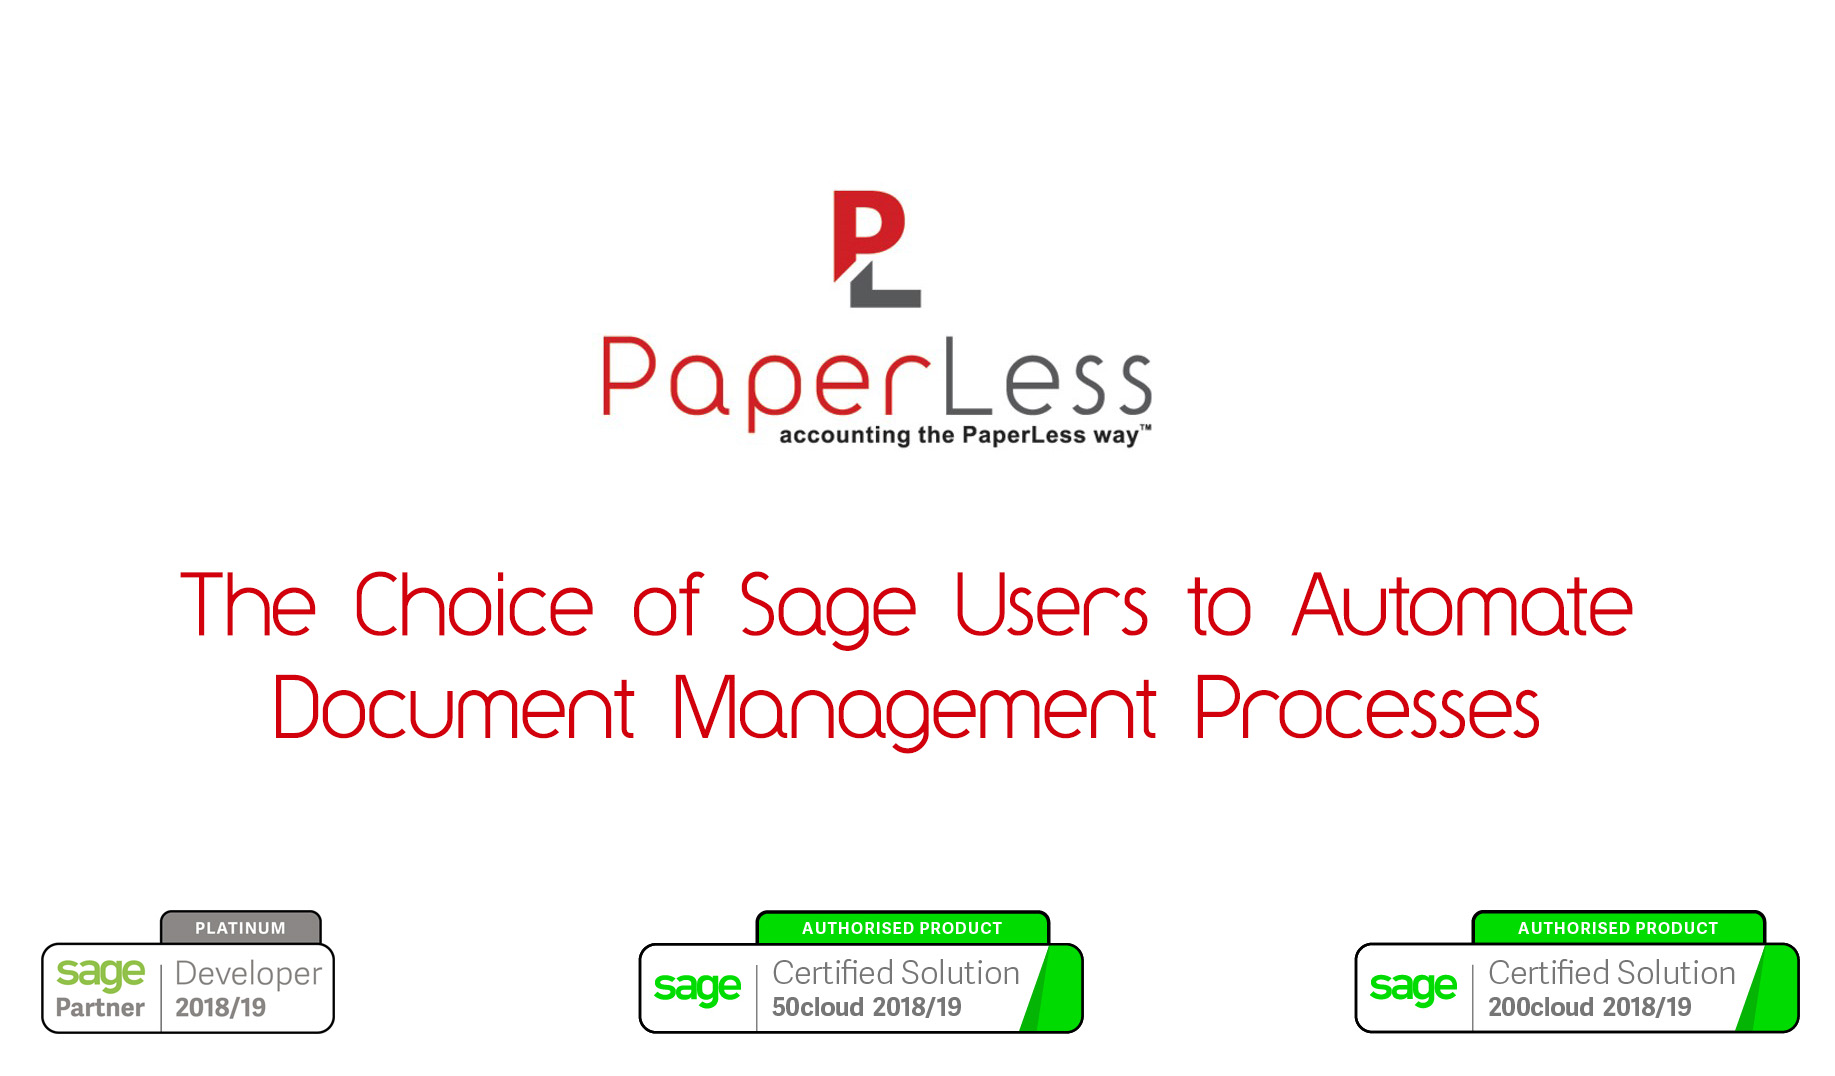 Click here to find out more about Online Invoice Approval for Sage